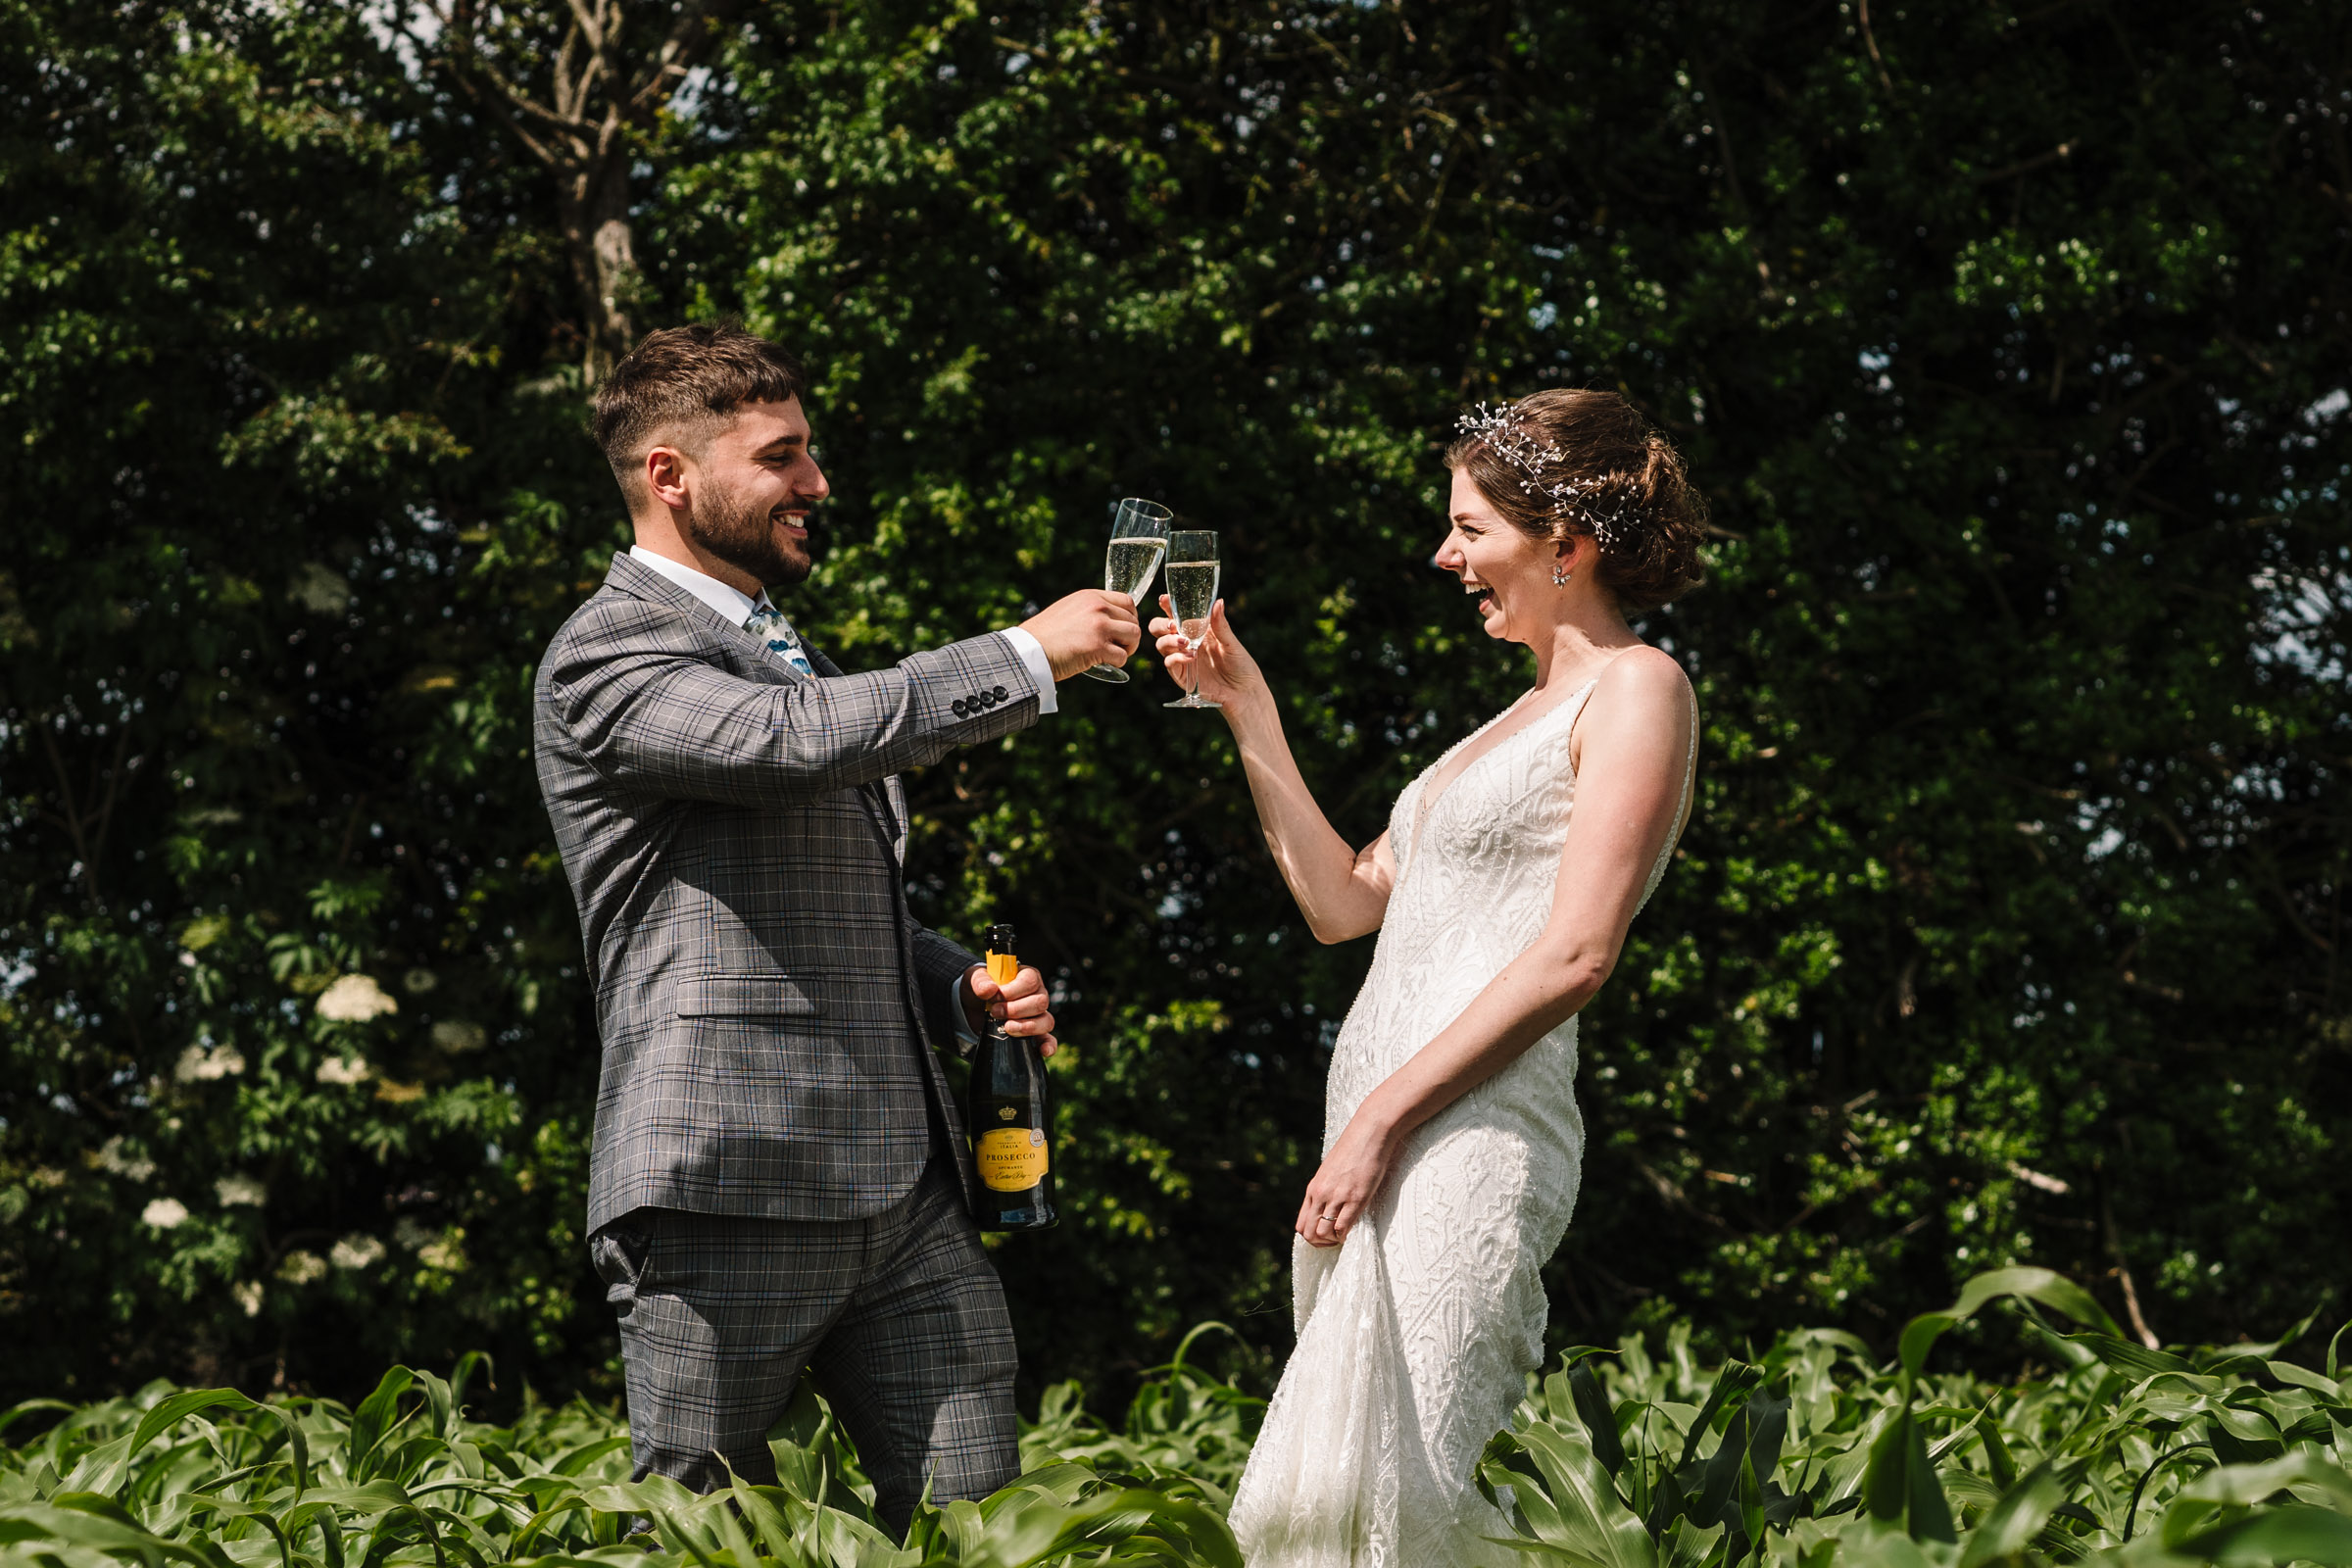 bride and groom, just married, clinking champagne glasses in field